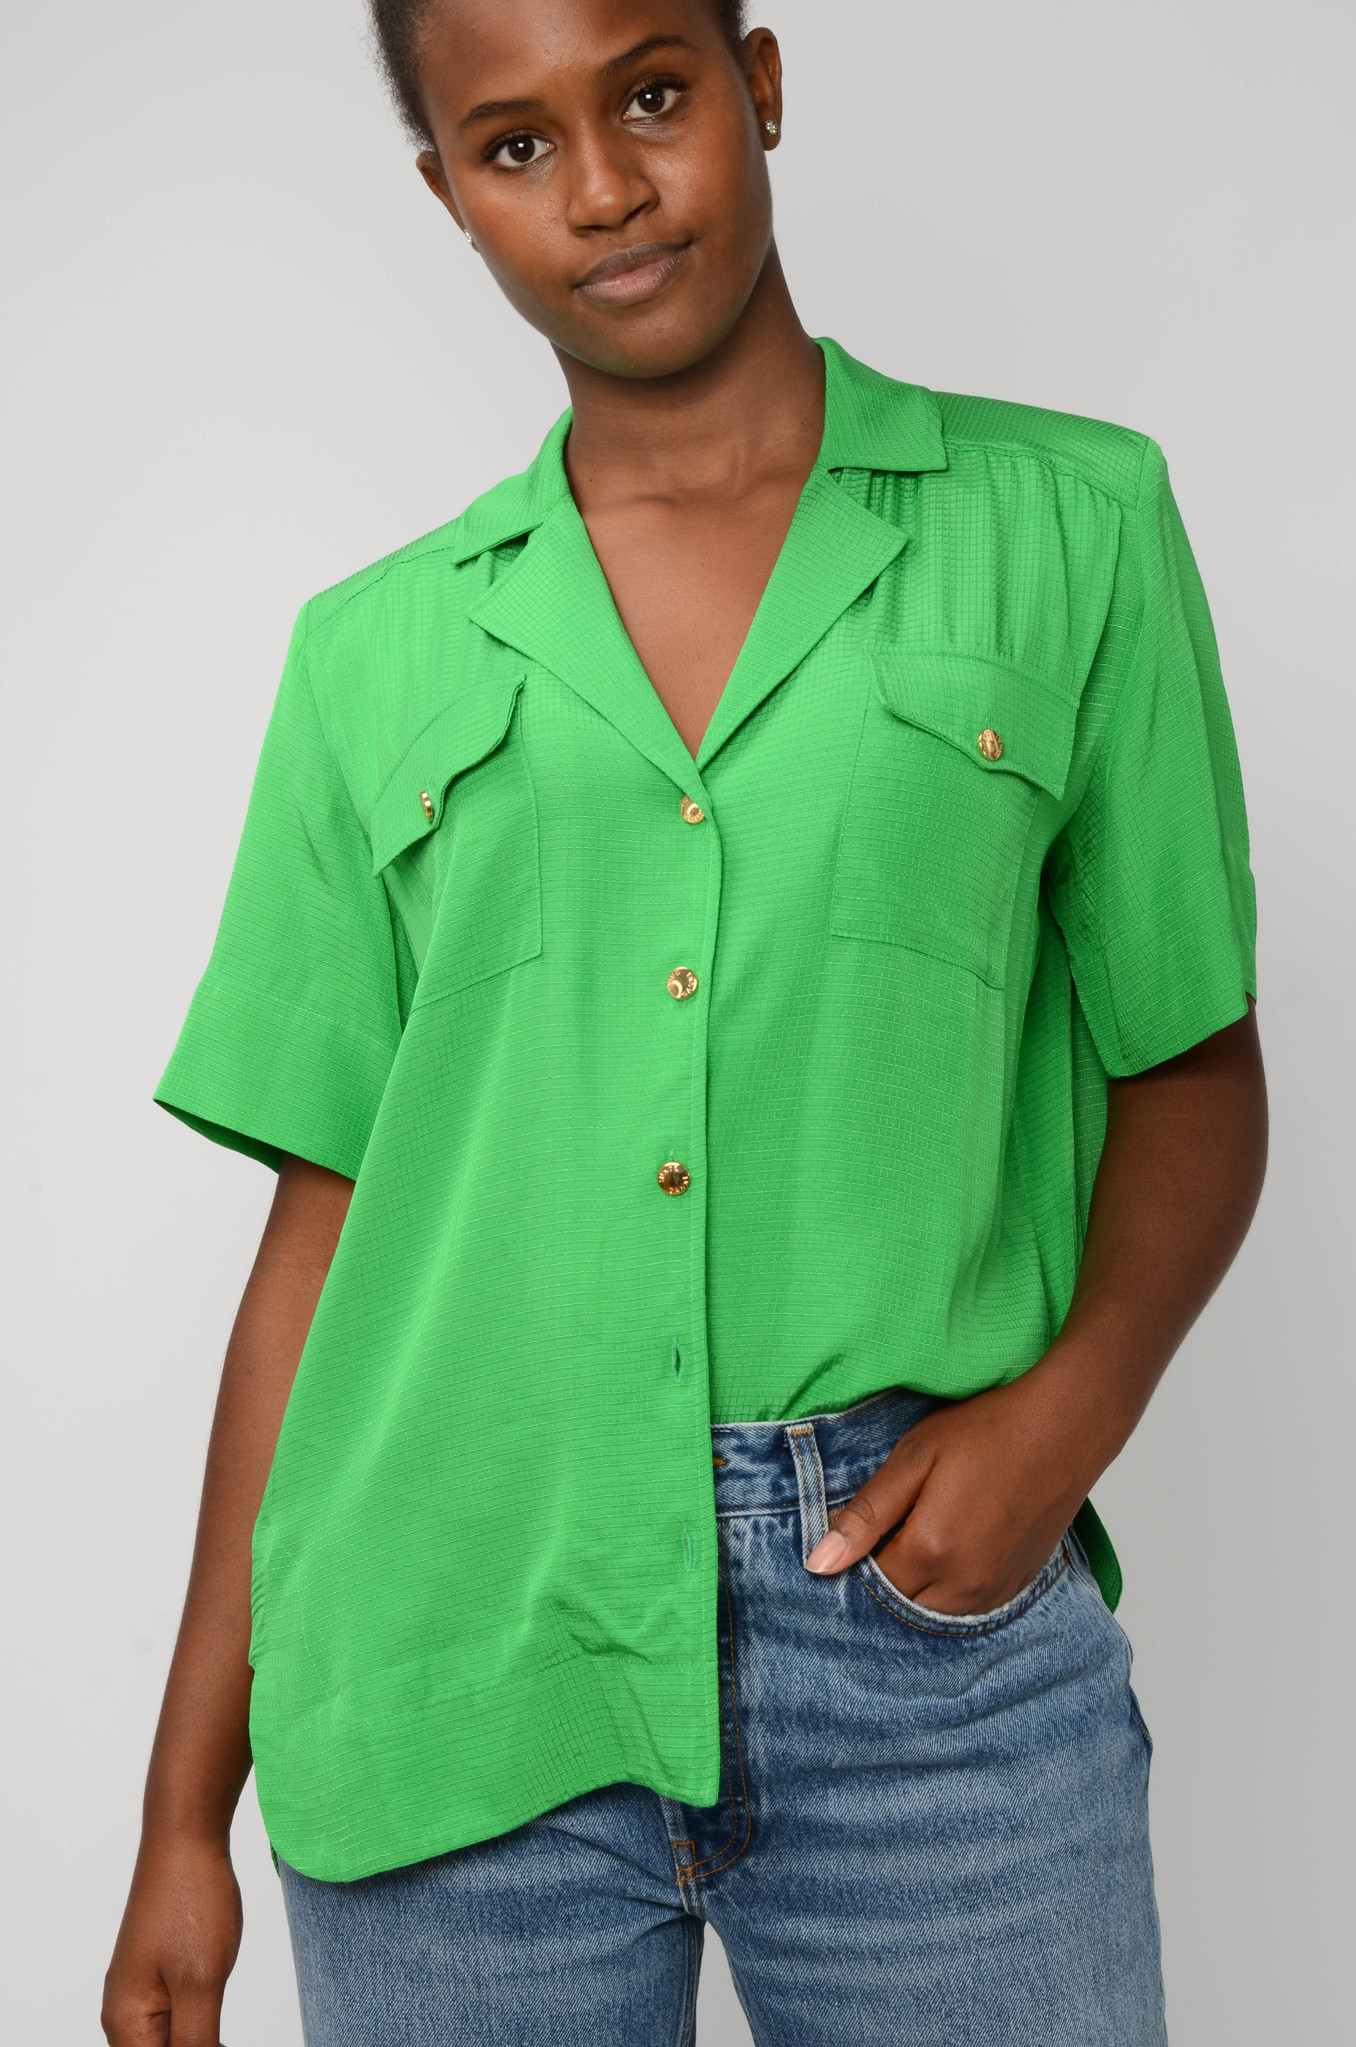 RIPSTOP SHIRT IN KELLY GREEN-5